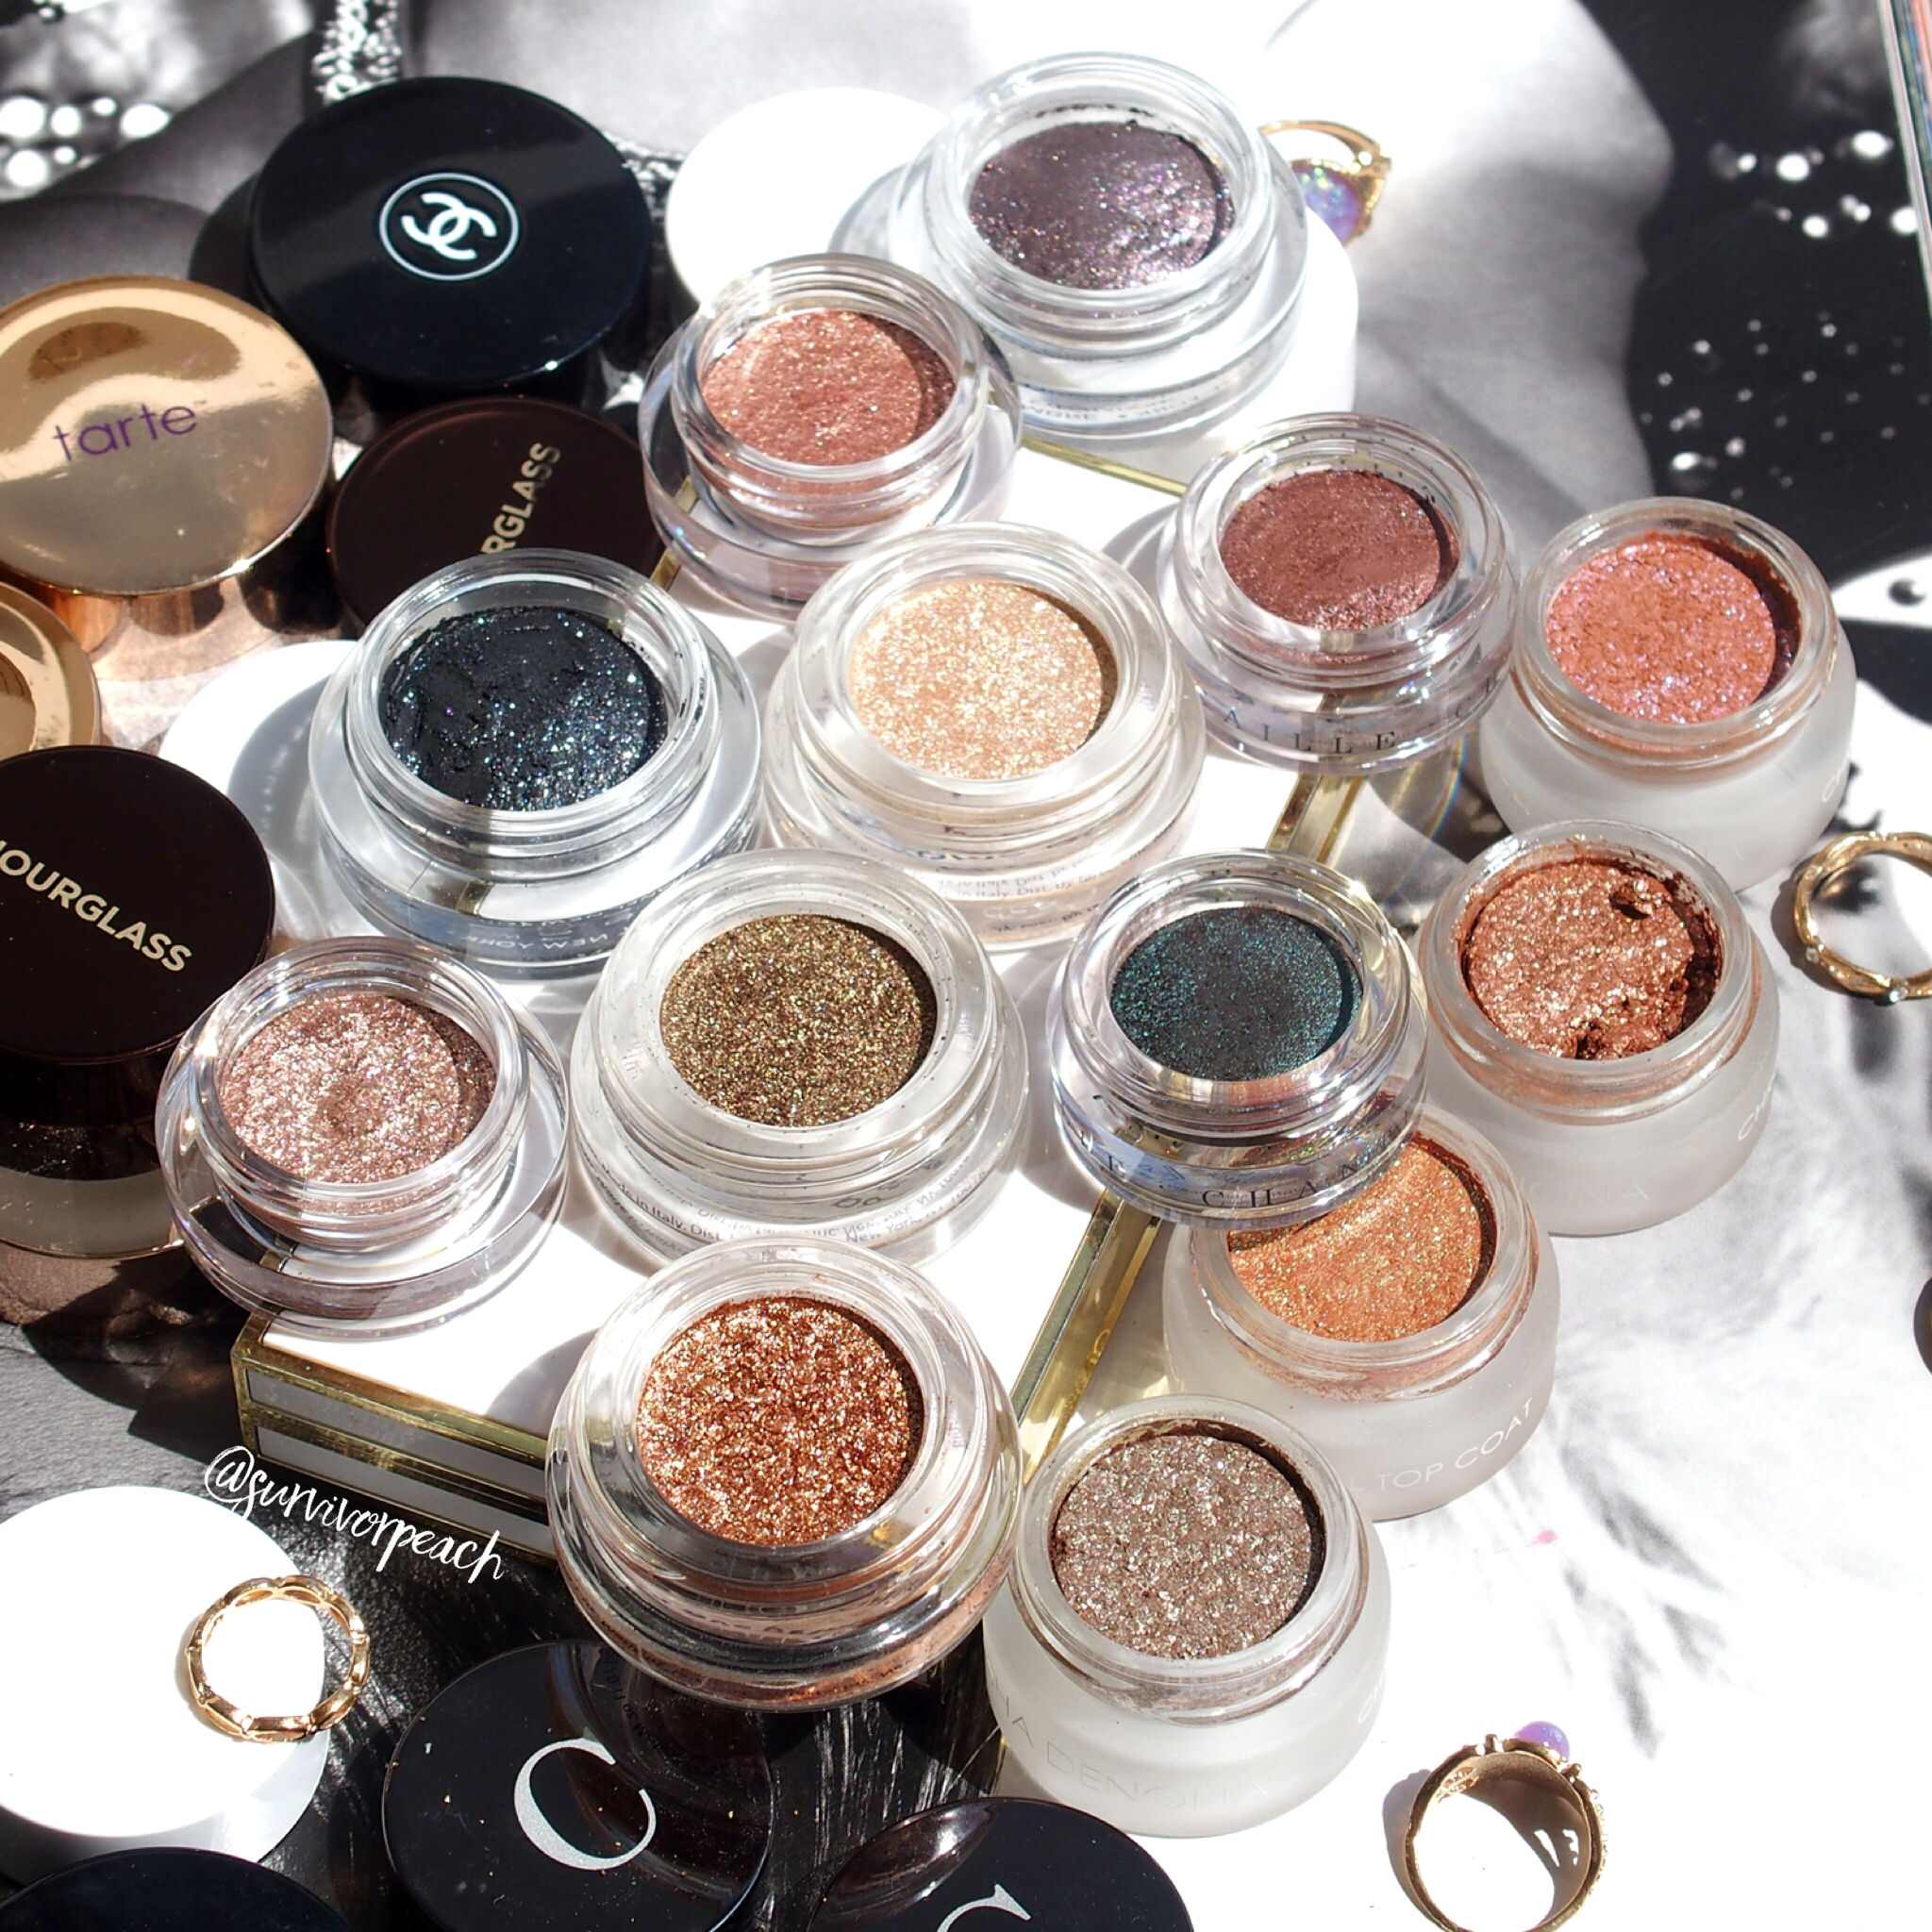 My Eyeshadow pots collection